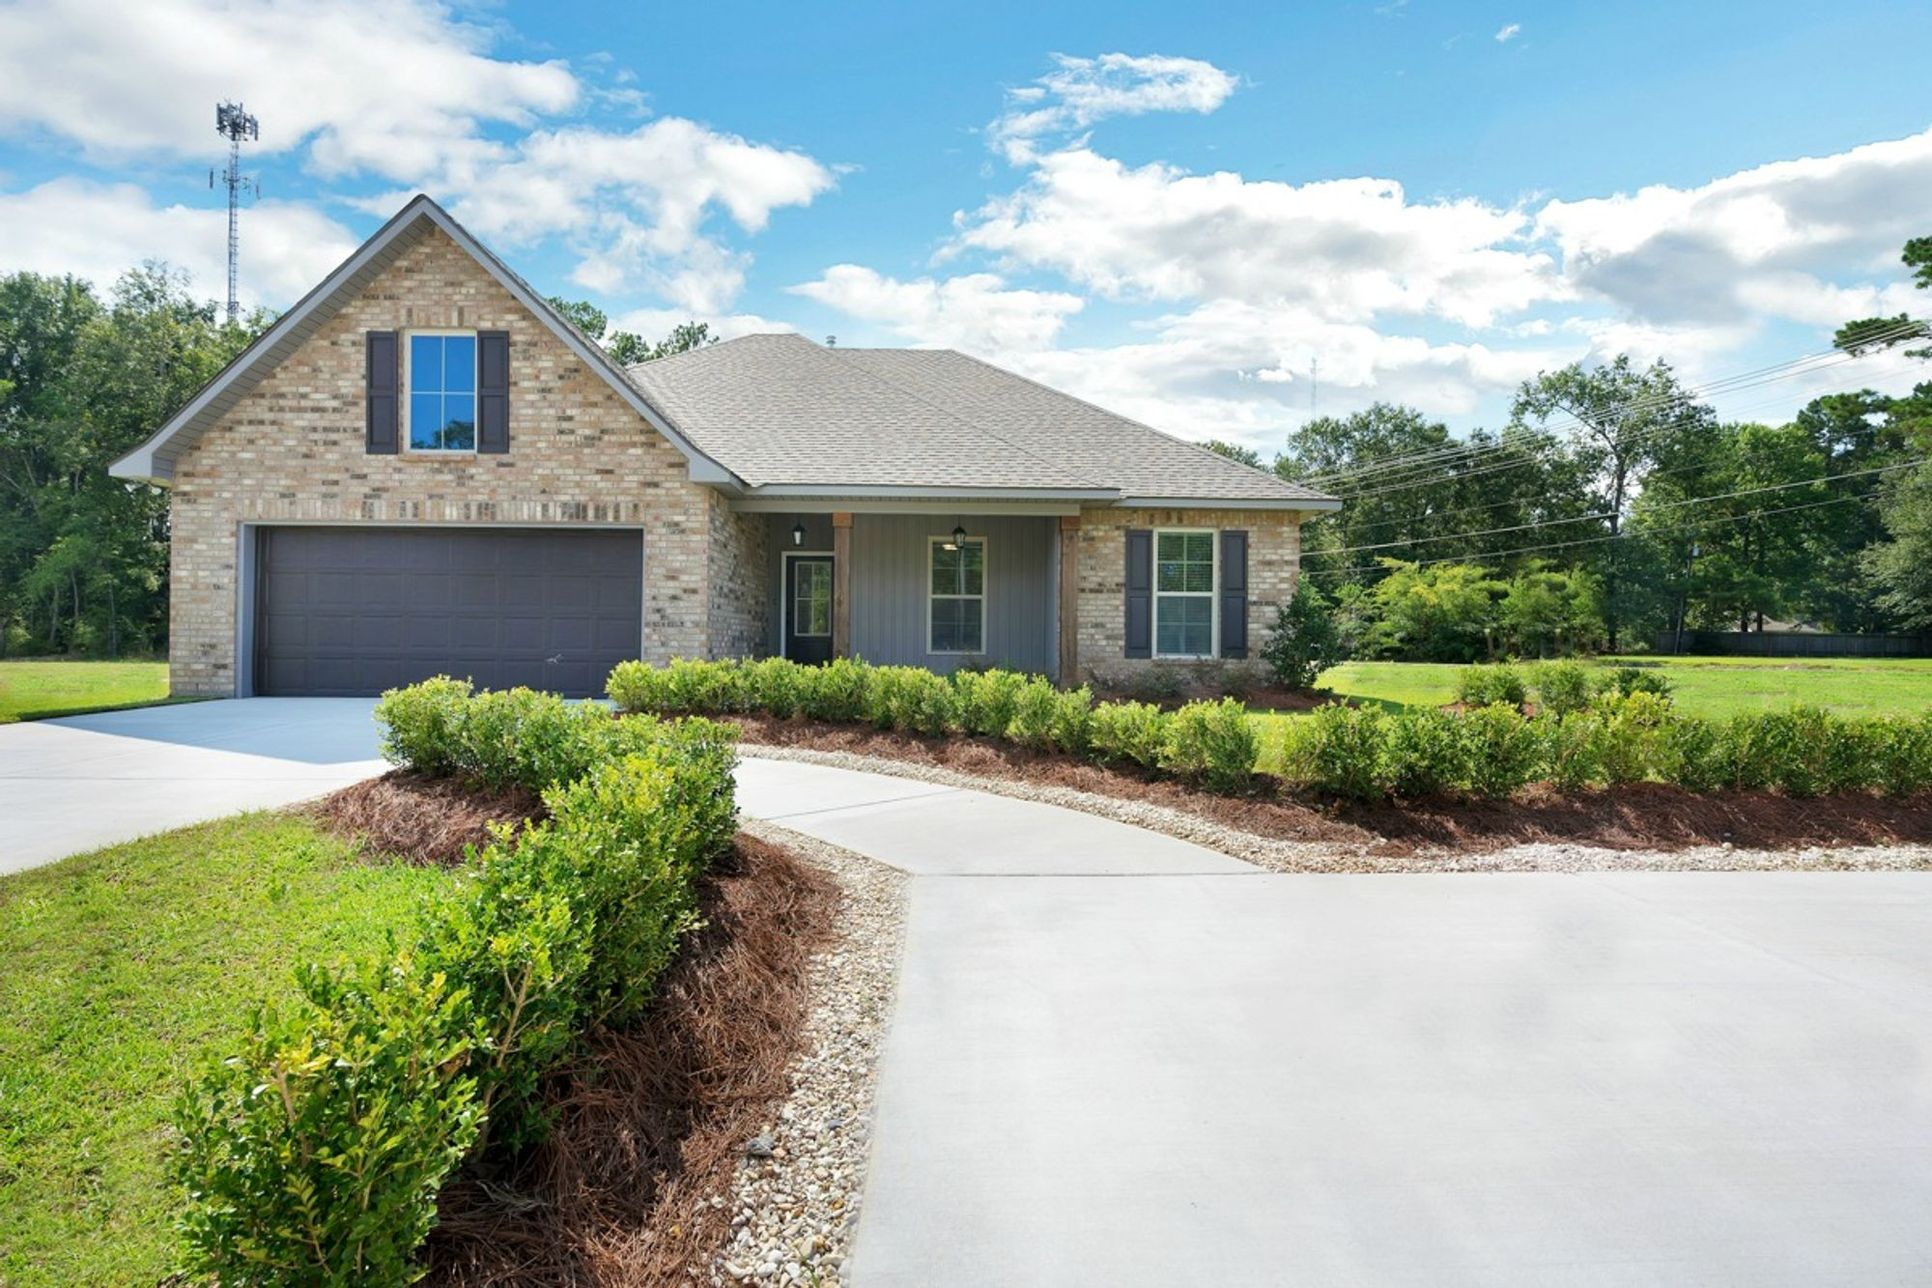 new homes in ponchatoula la by dsld homes:Raleigh IV A - Plan - Gray's Creek Community - Front of Home